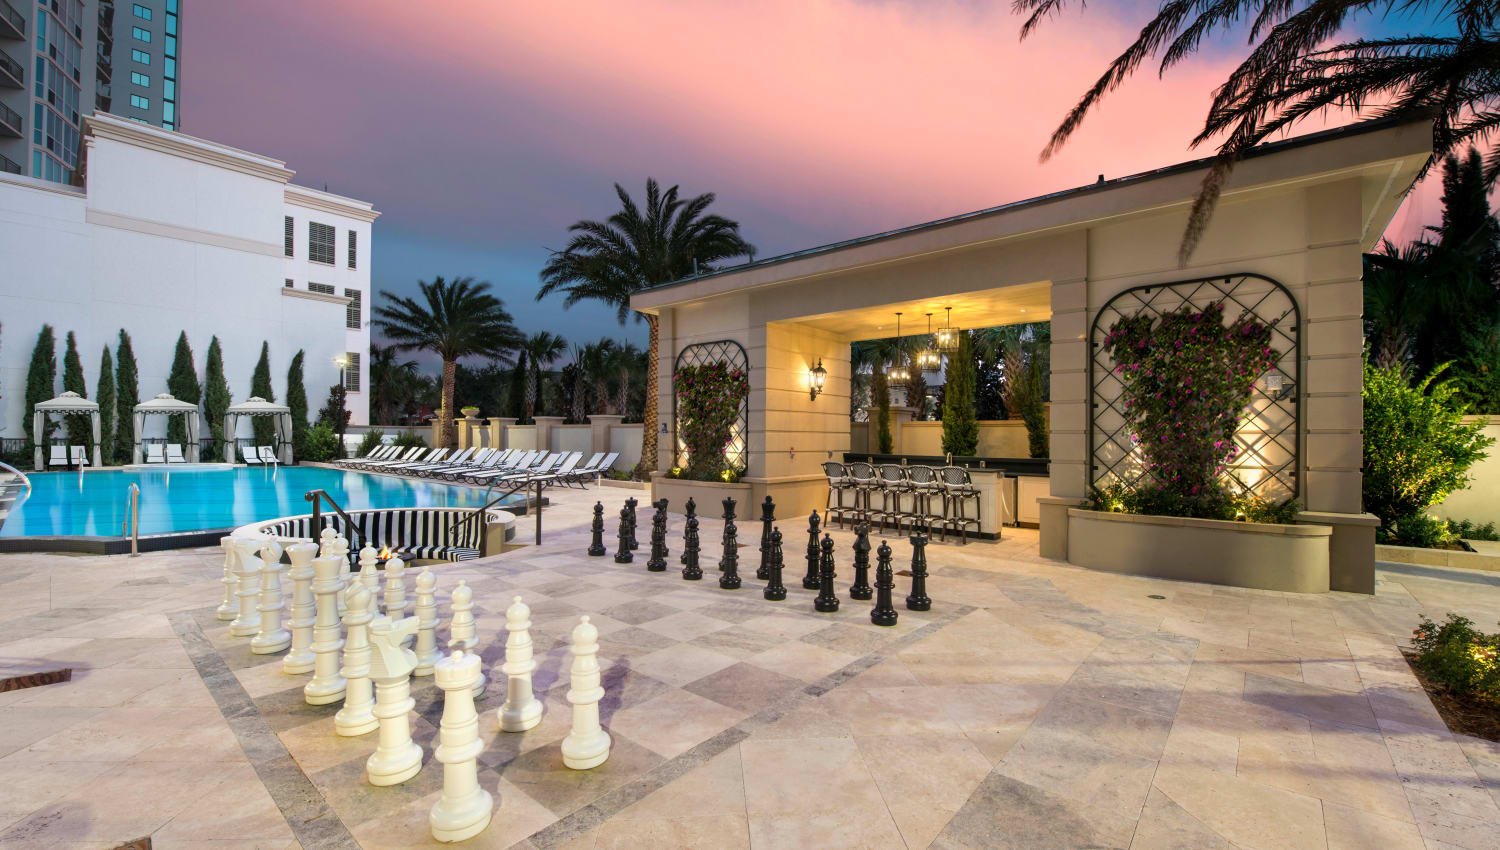 Twilight at the life-size chess board at Olympus Harbour Island in Tampa, Florida